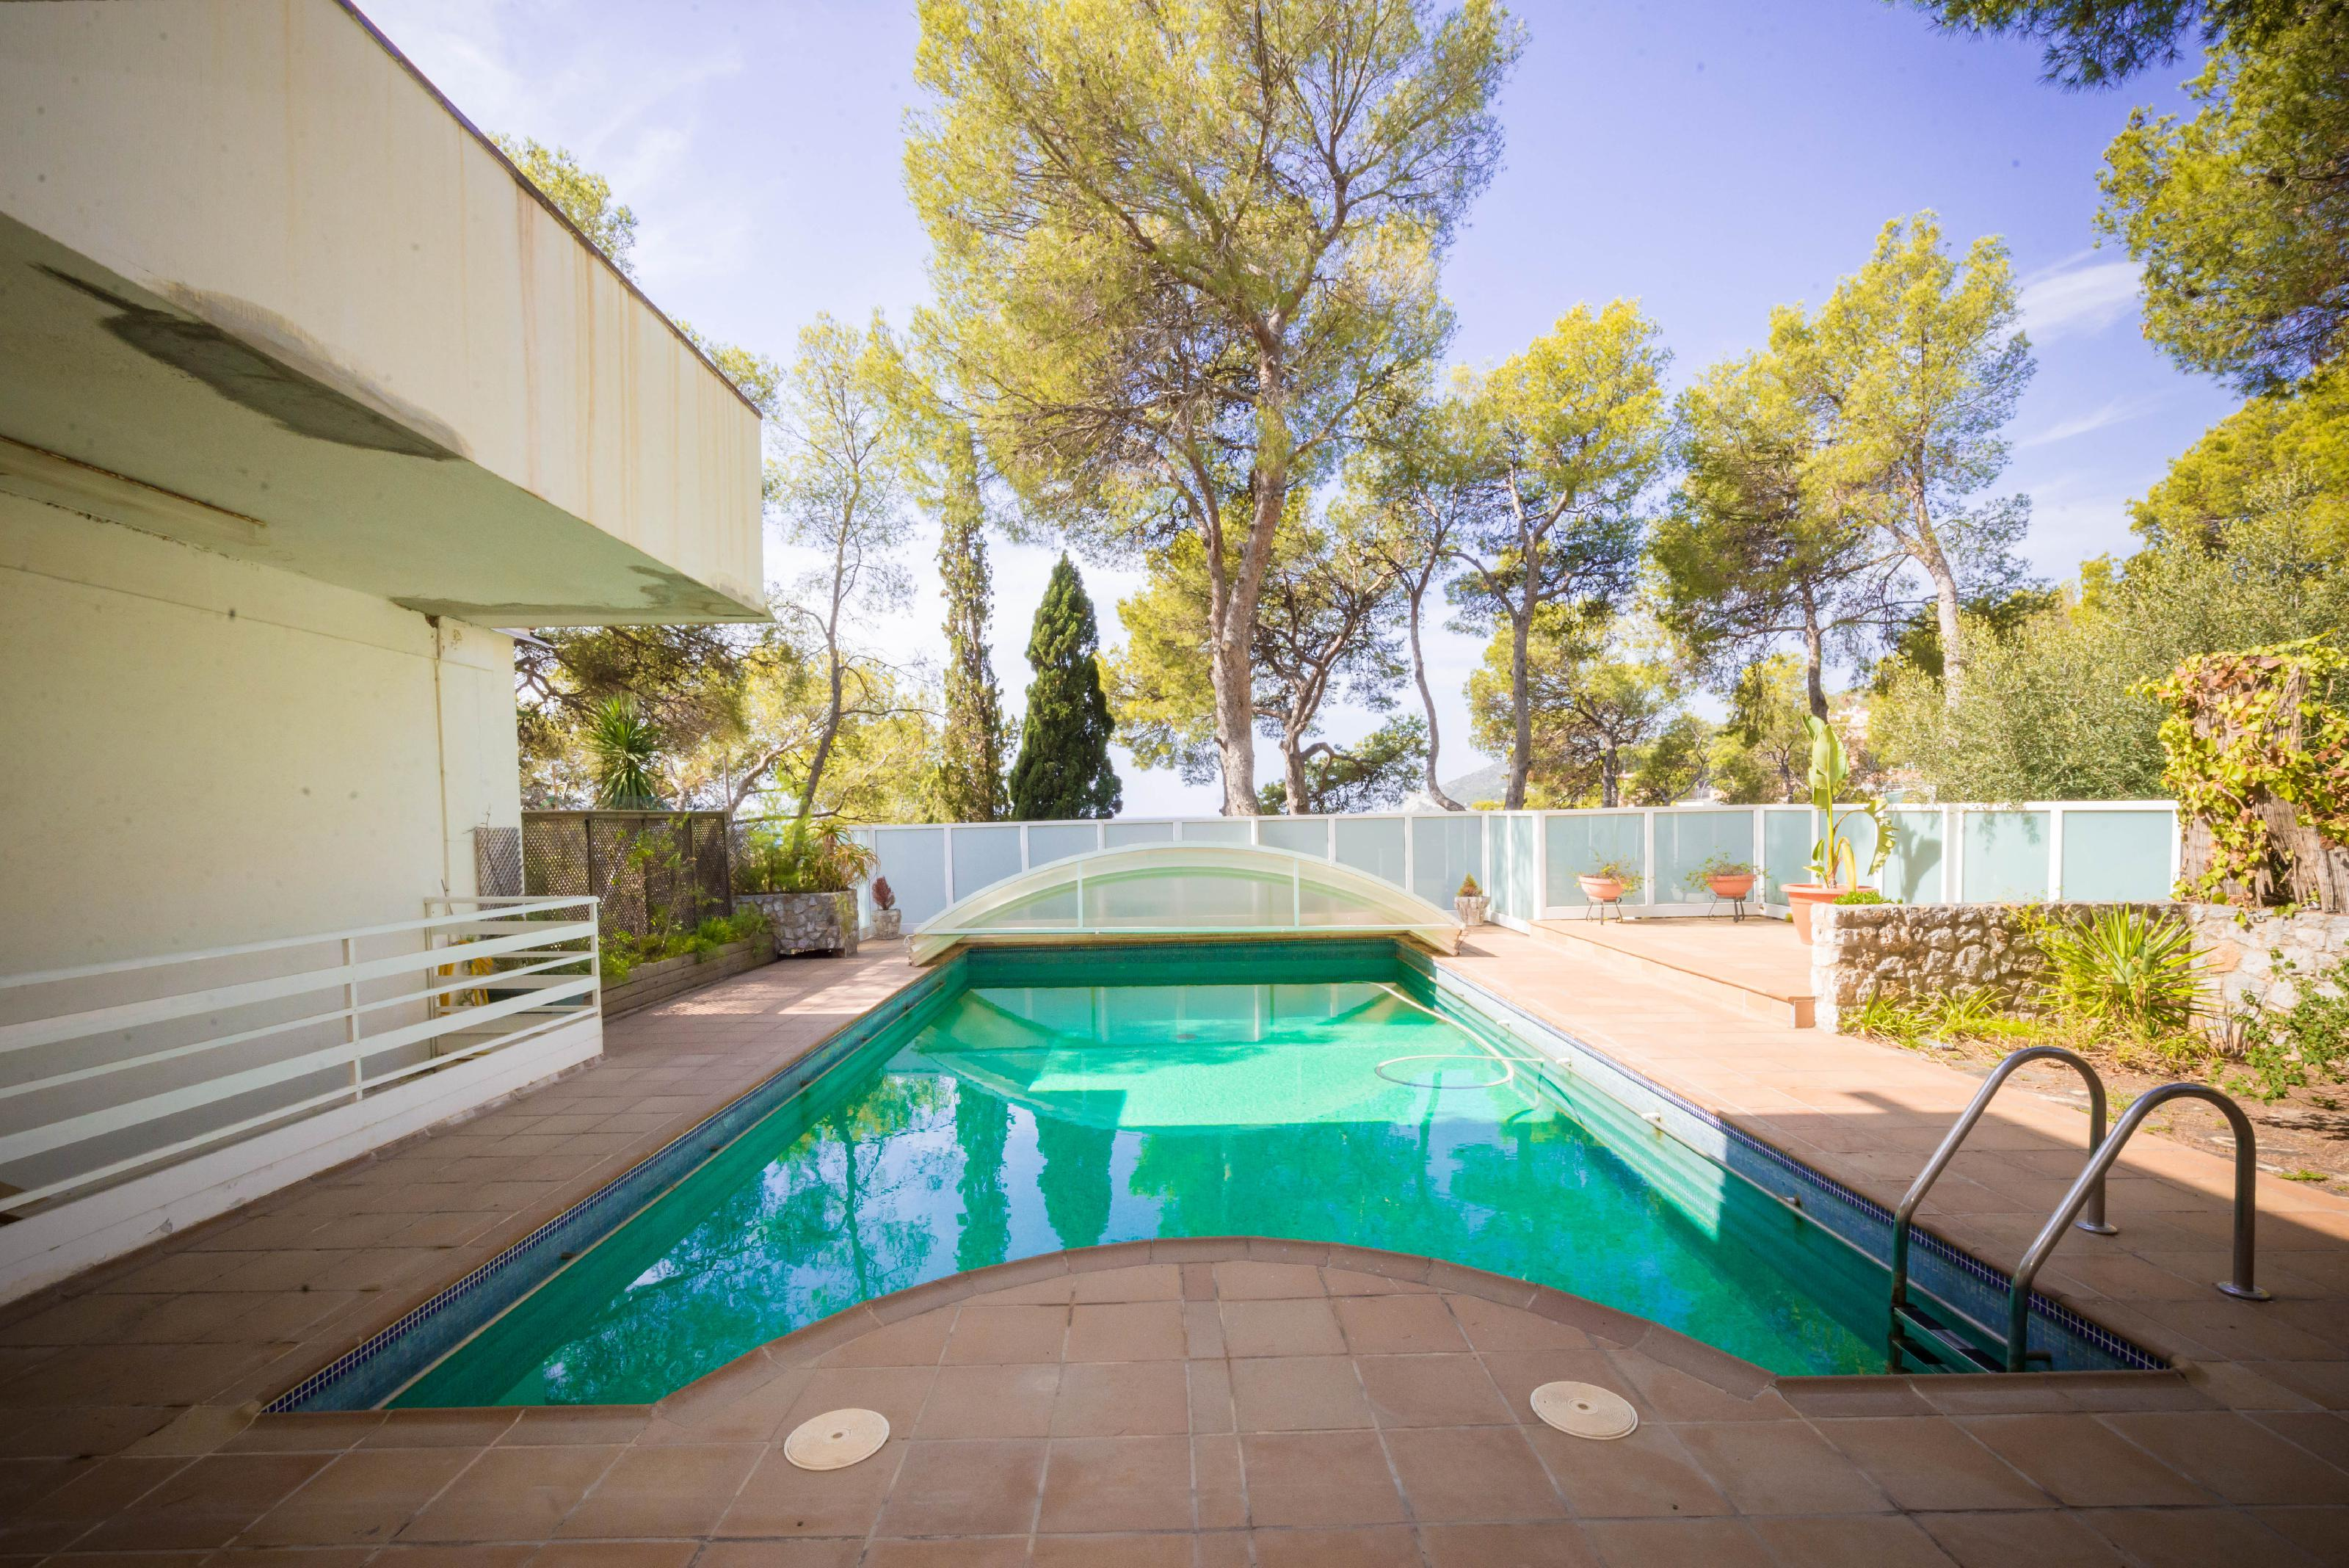 253501 Detached House for sale in Bellamar 5